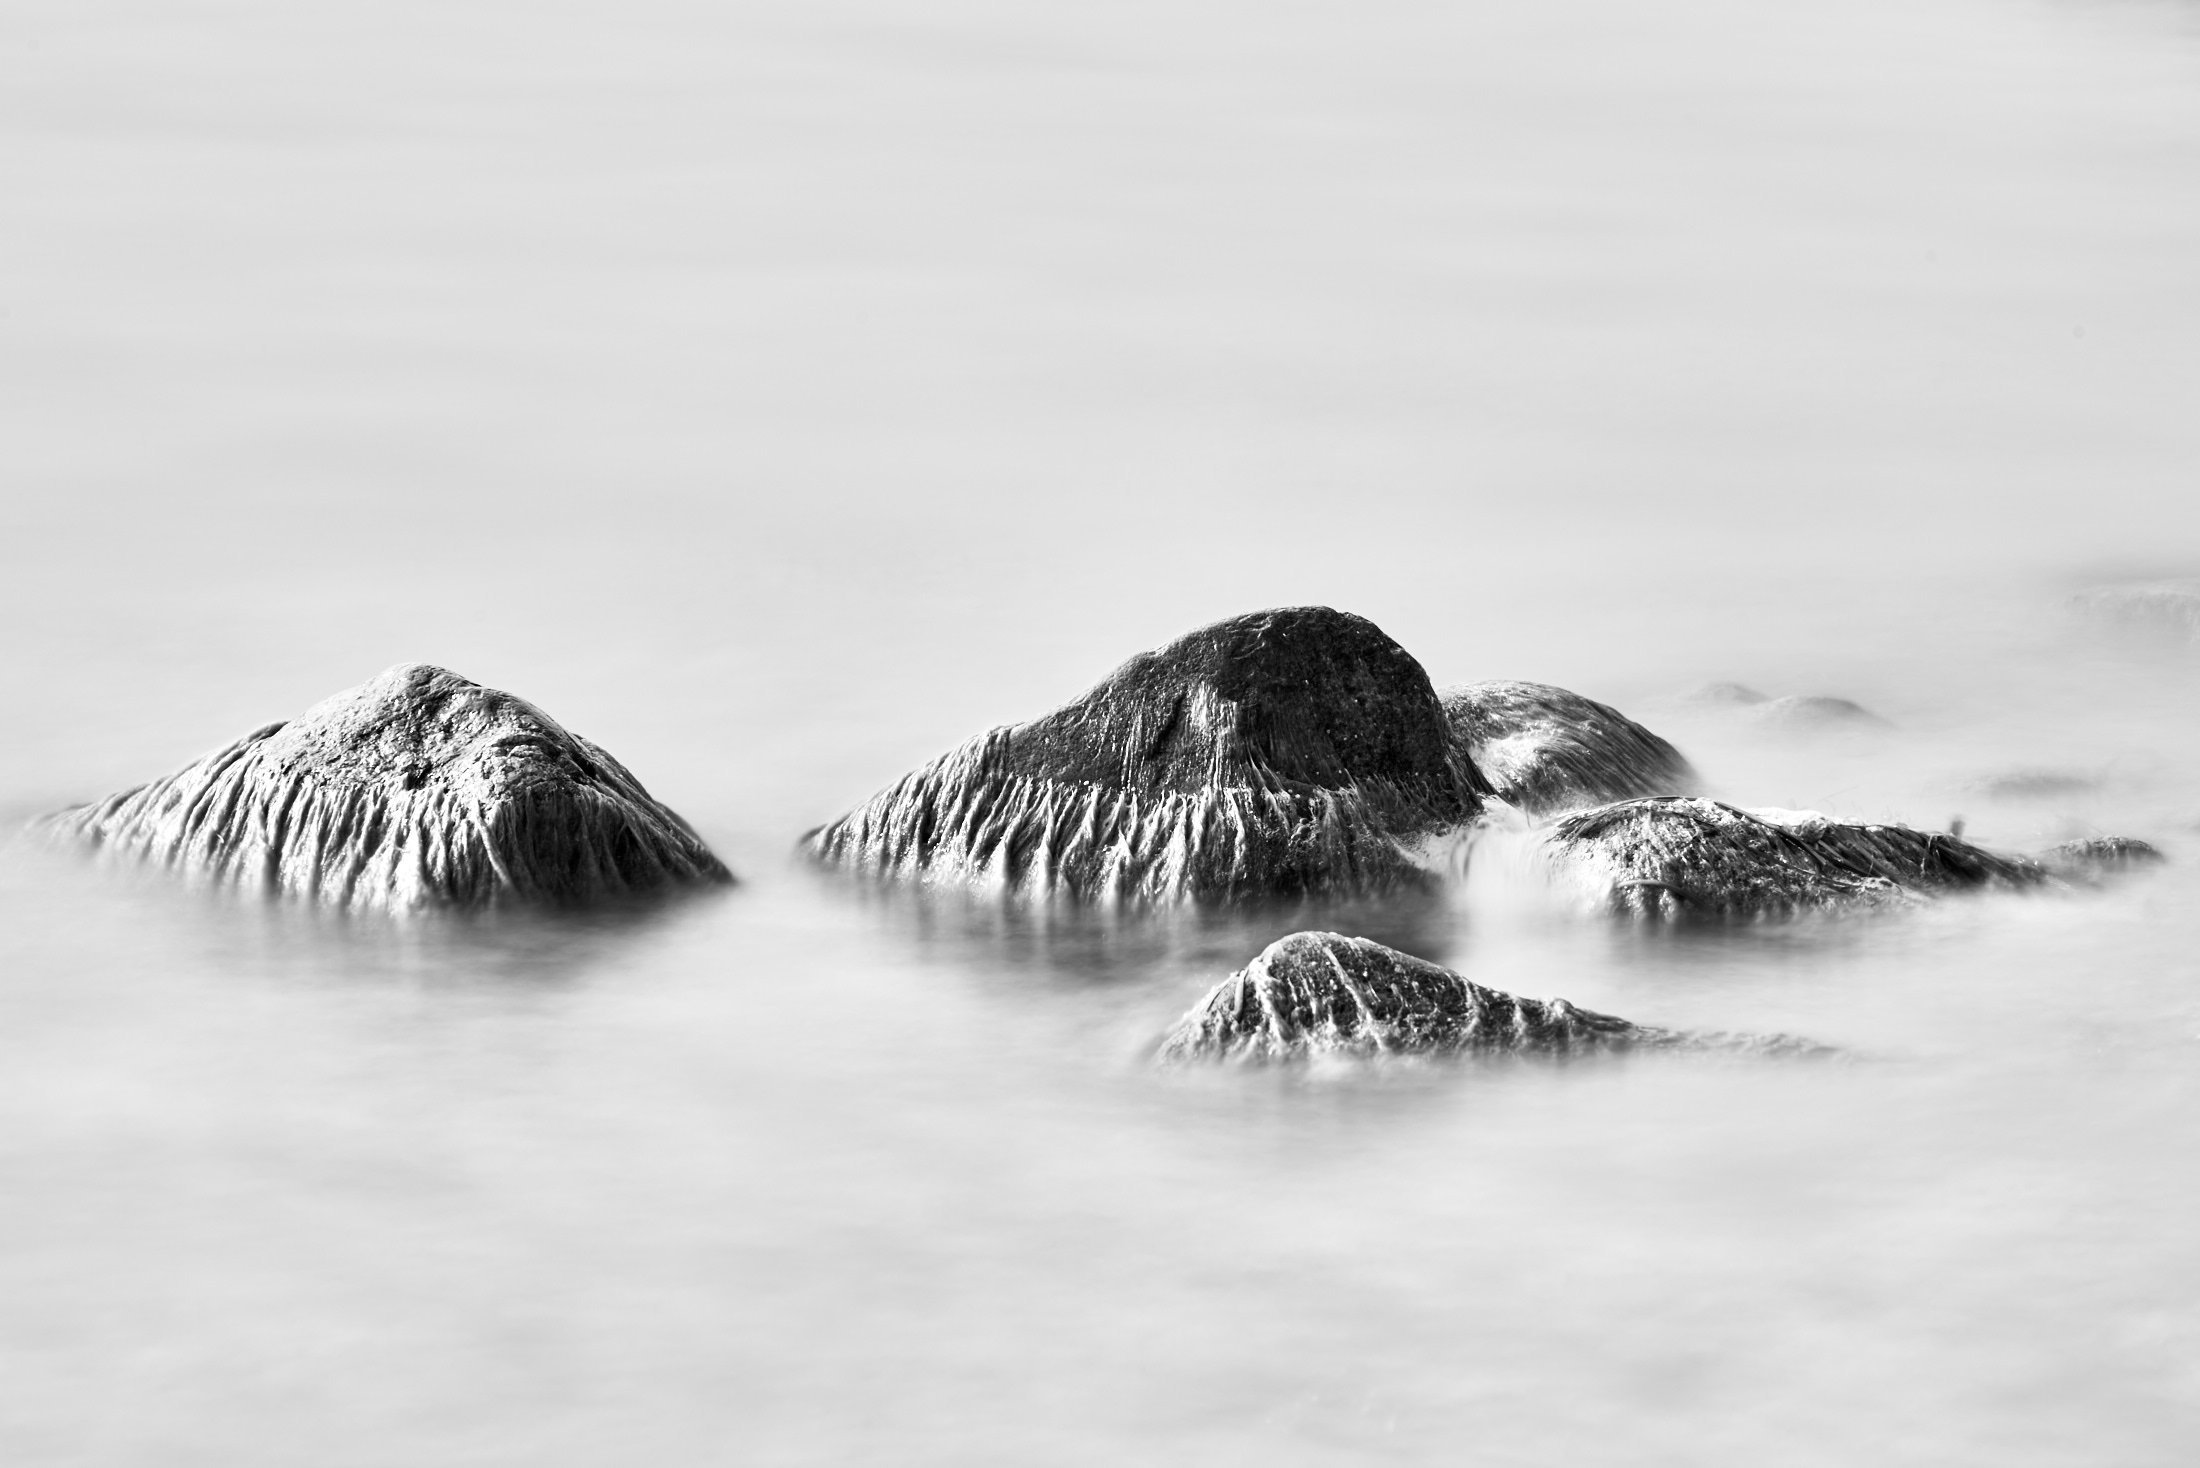 Mountains of the Sea IV, 2016